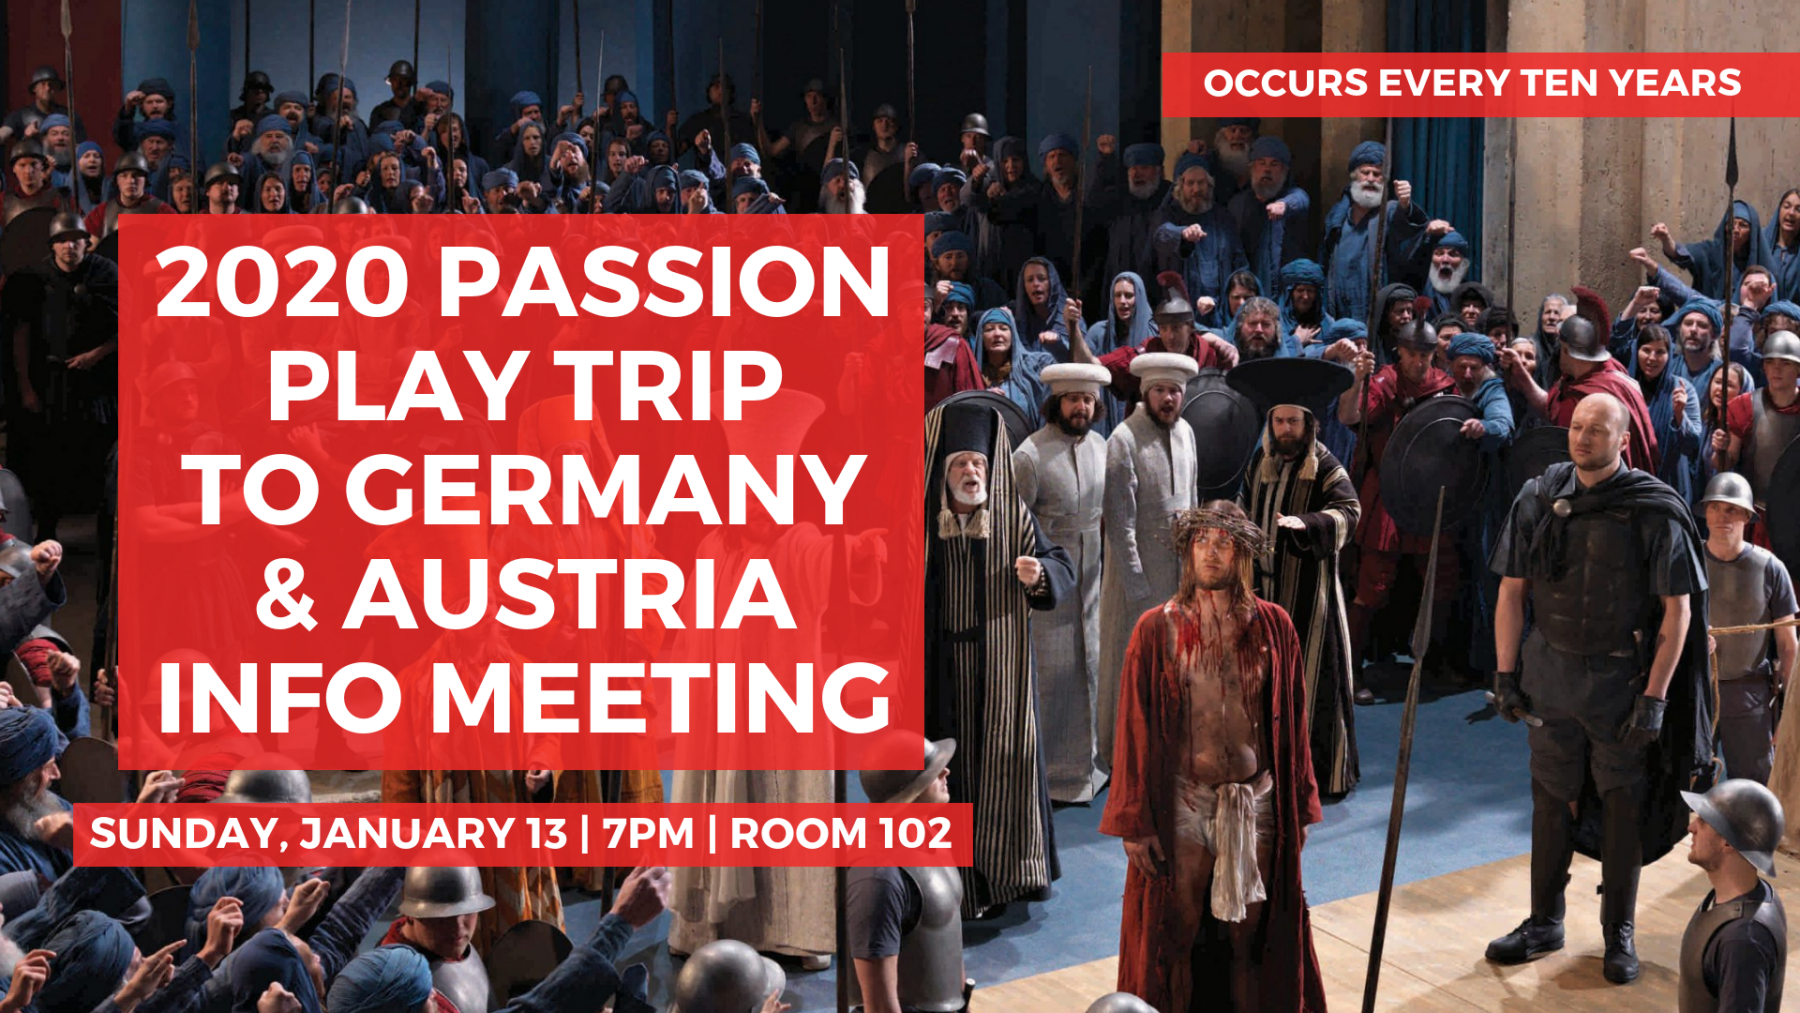 Germany/Austria Passion Play Info Meeting